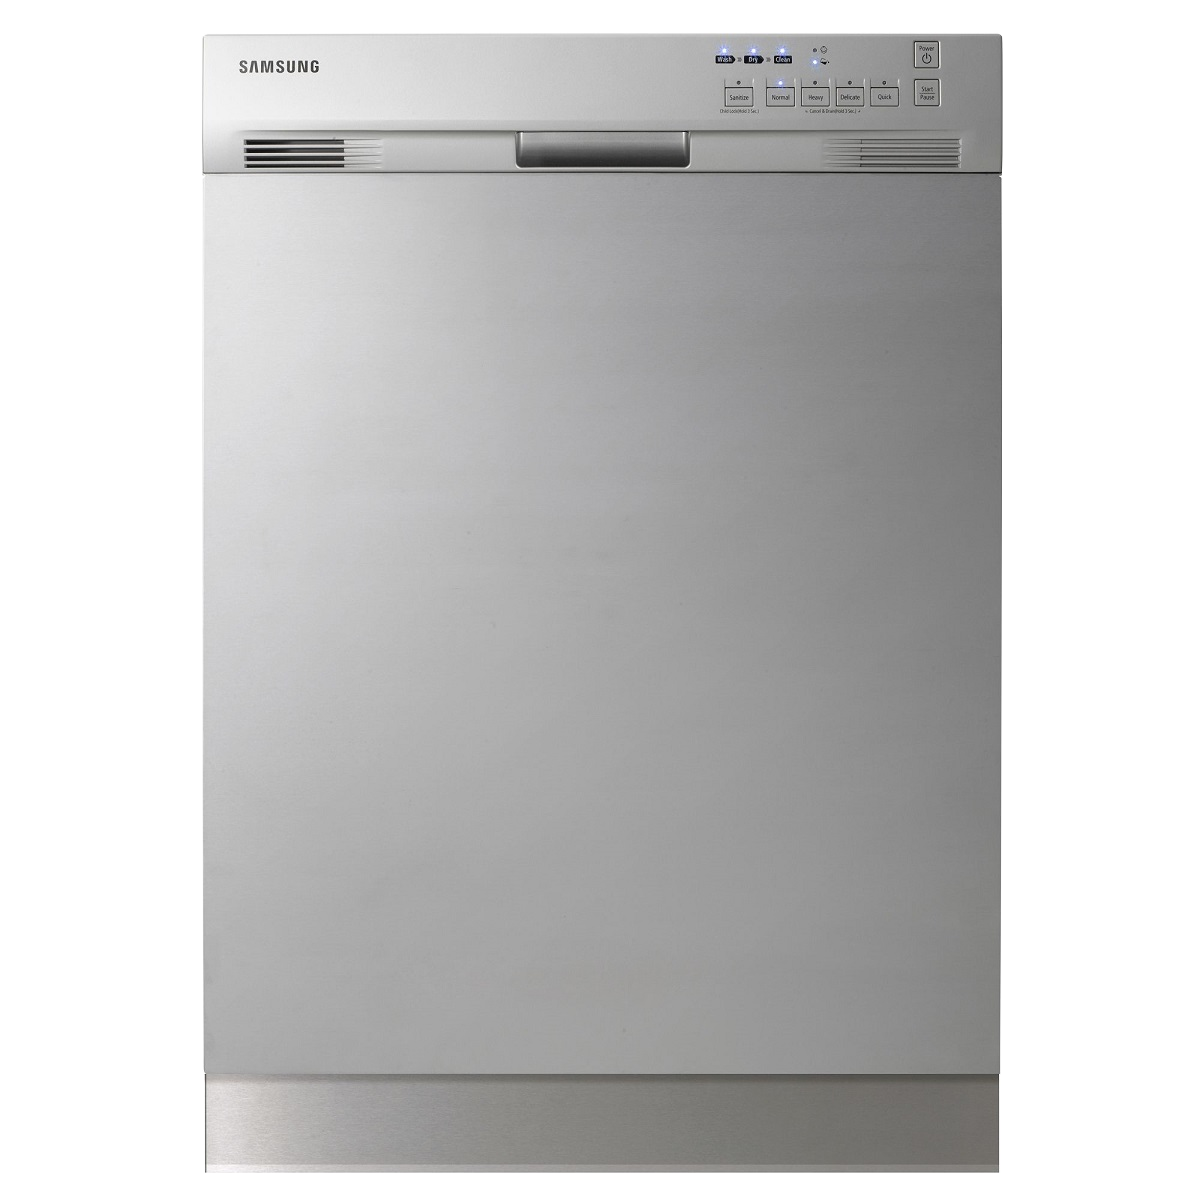 Samsung Dishwasher Repair